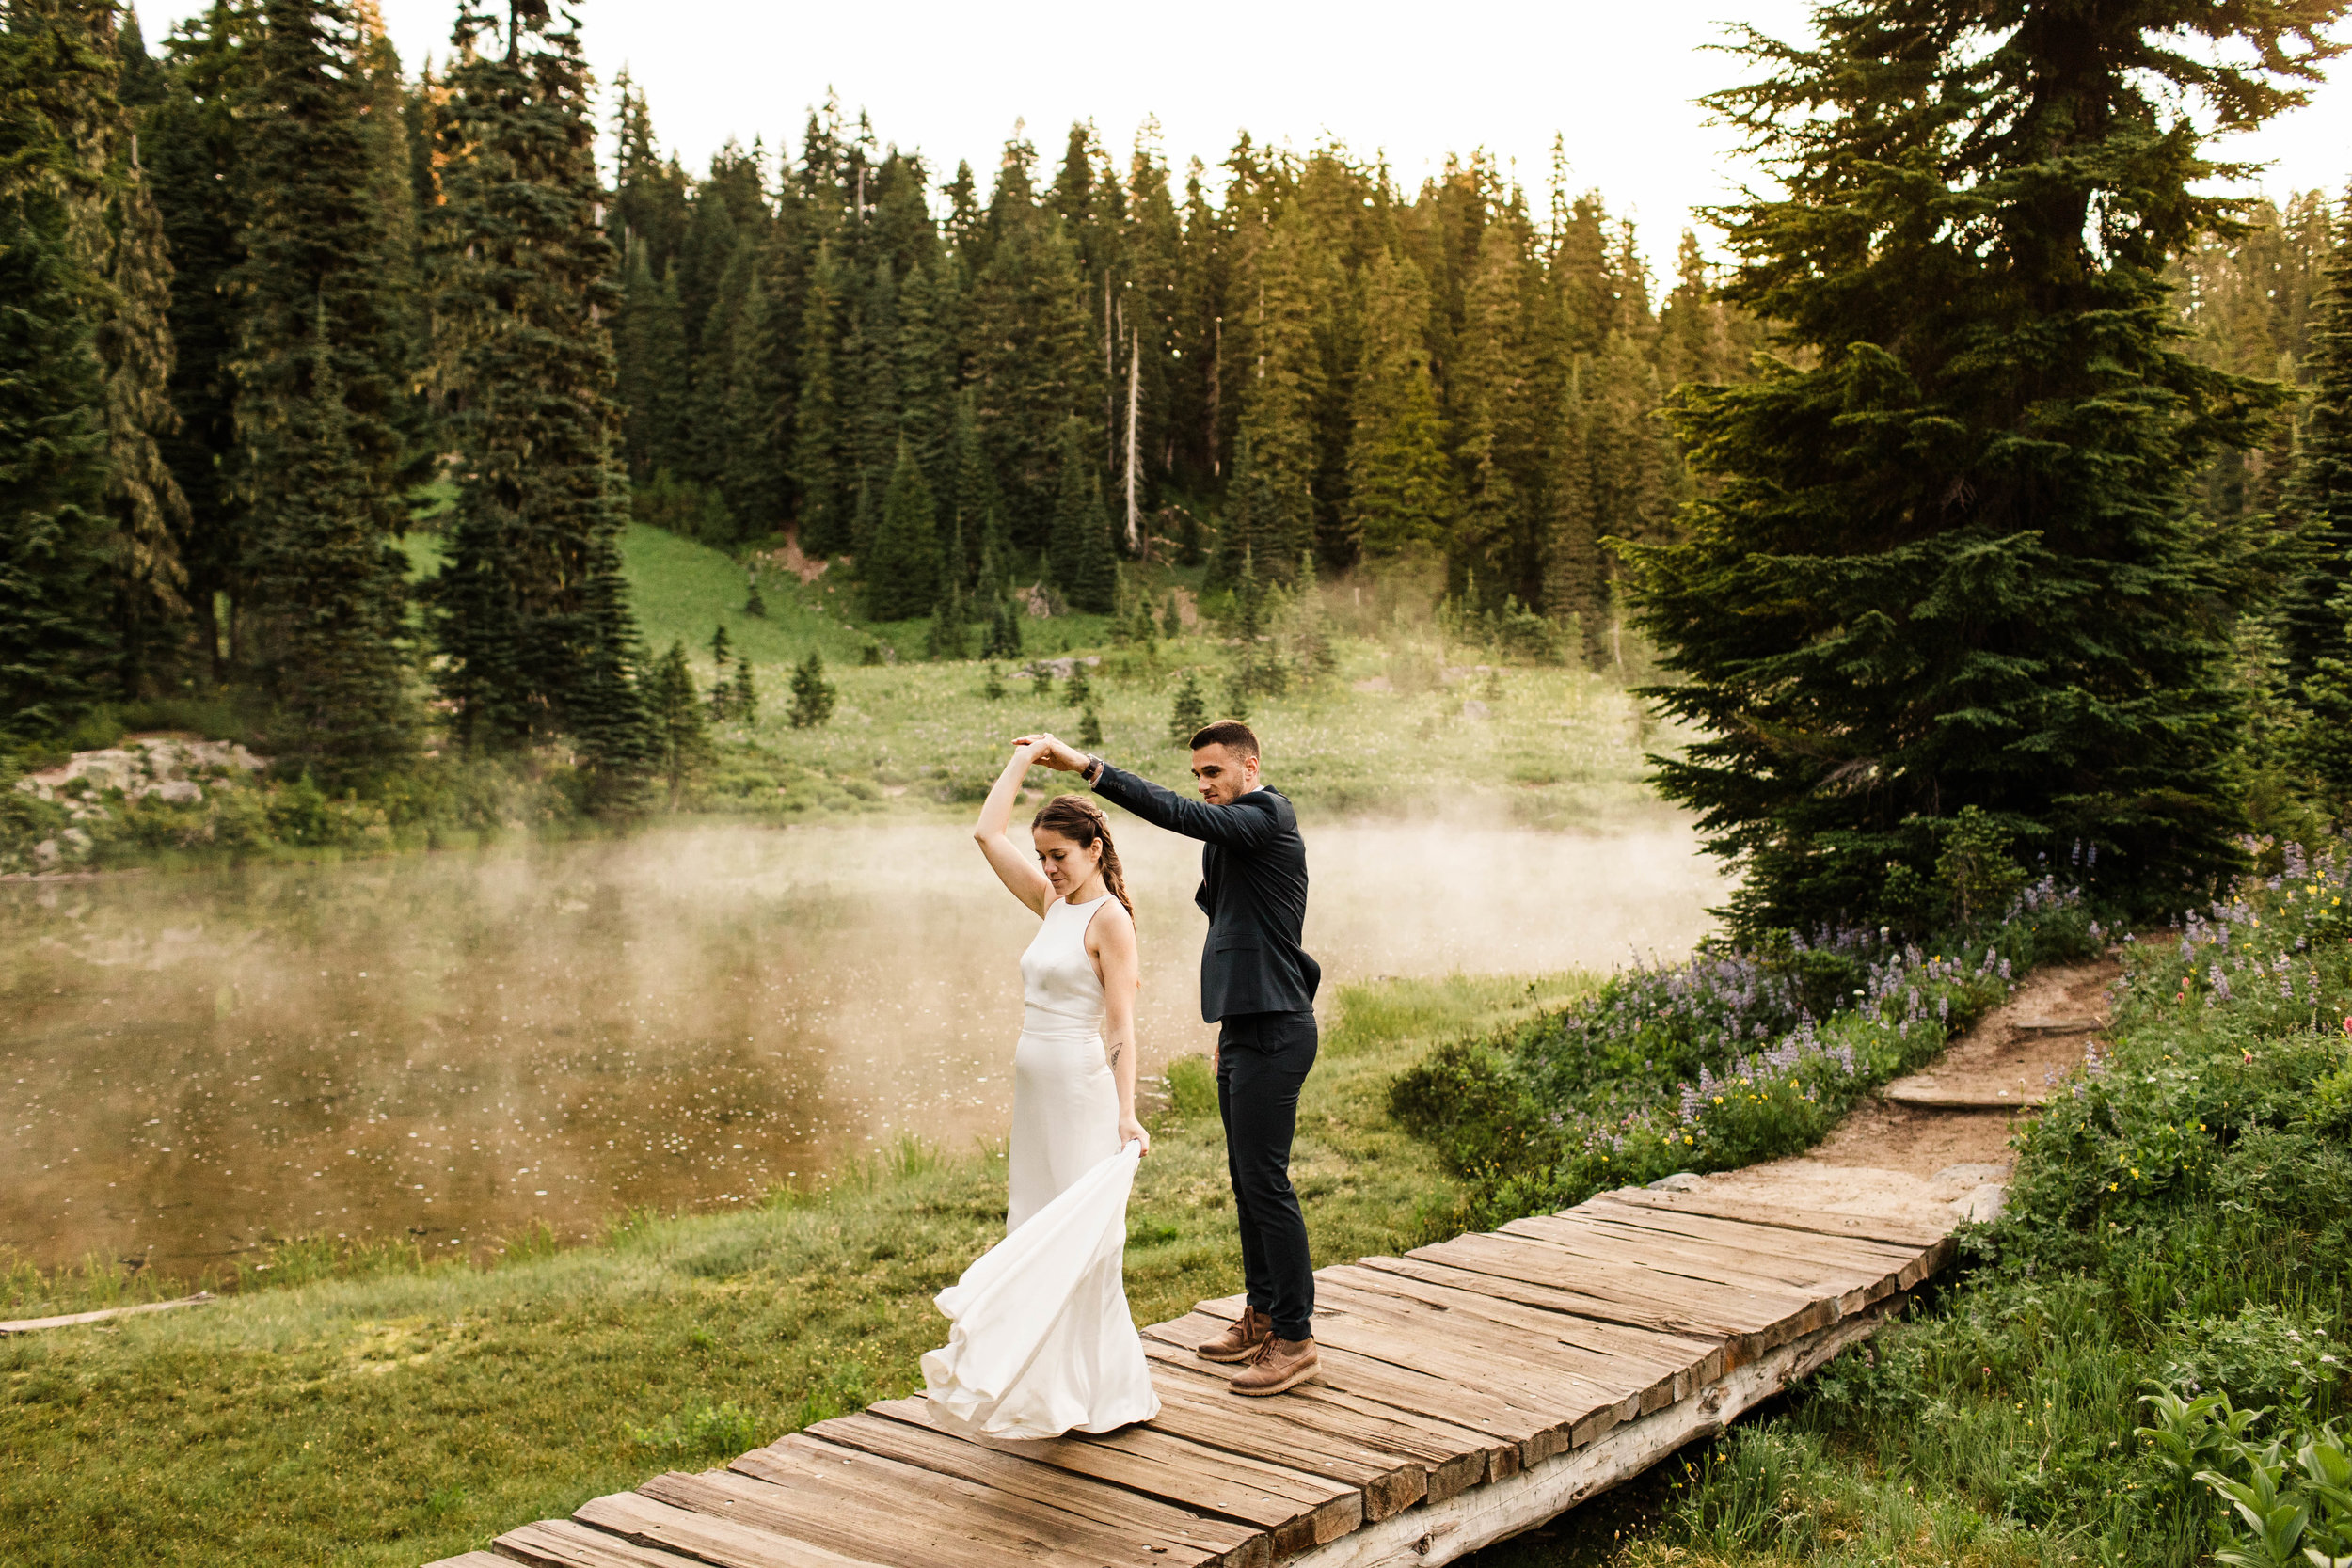 eloping couple dancing by an alpine lake during their Mount Rainier National Park elopement | Washington adventure wedding photographers